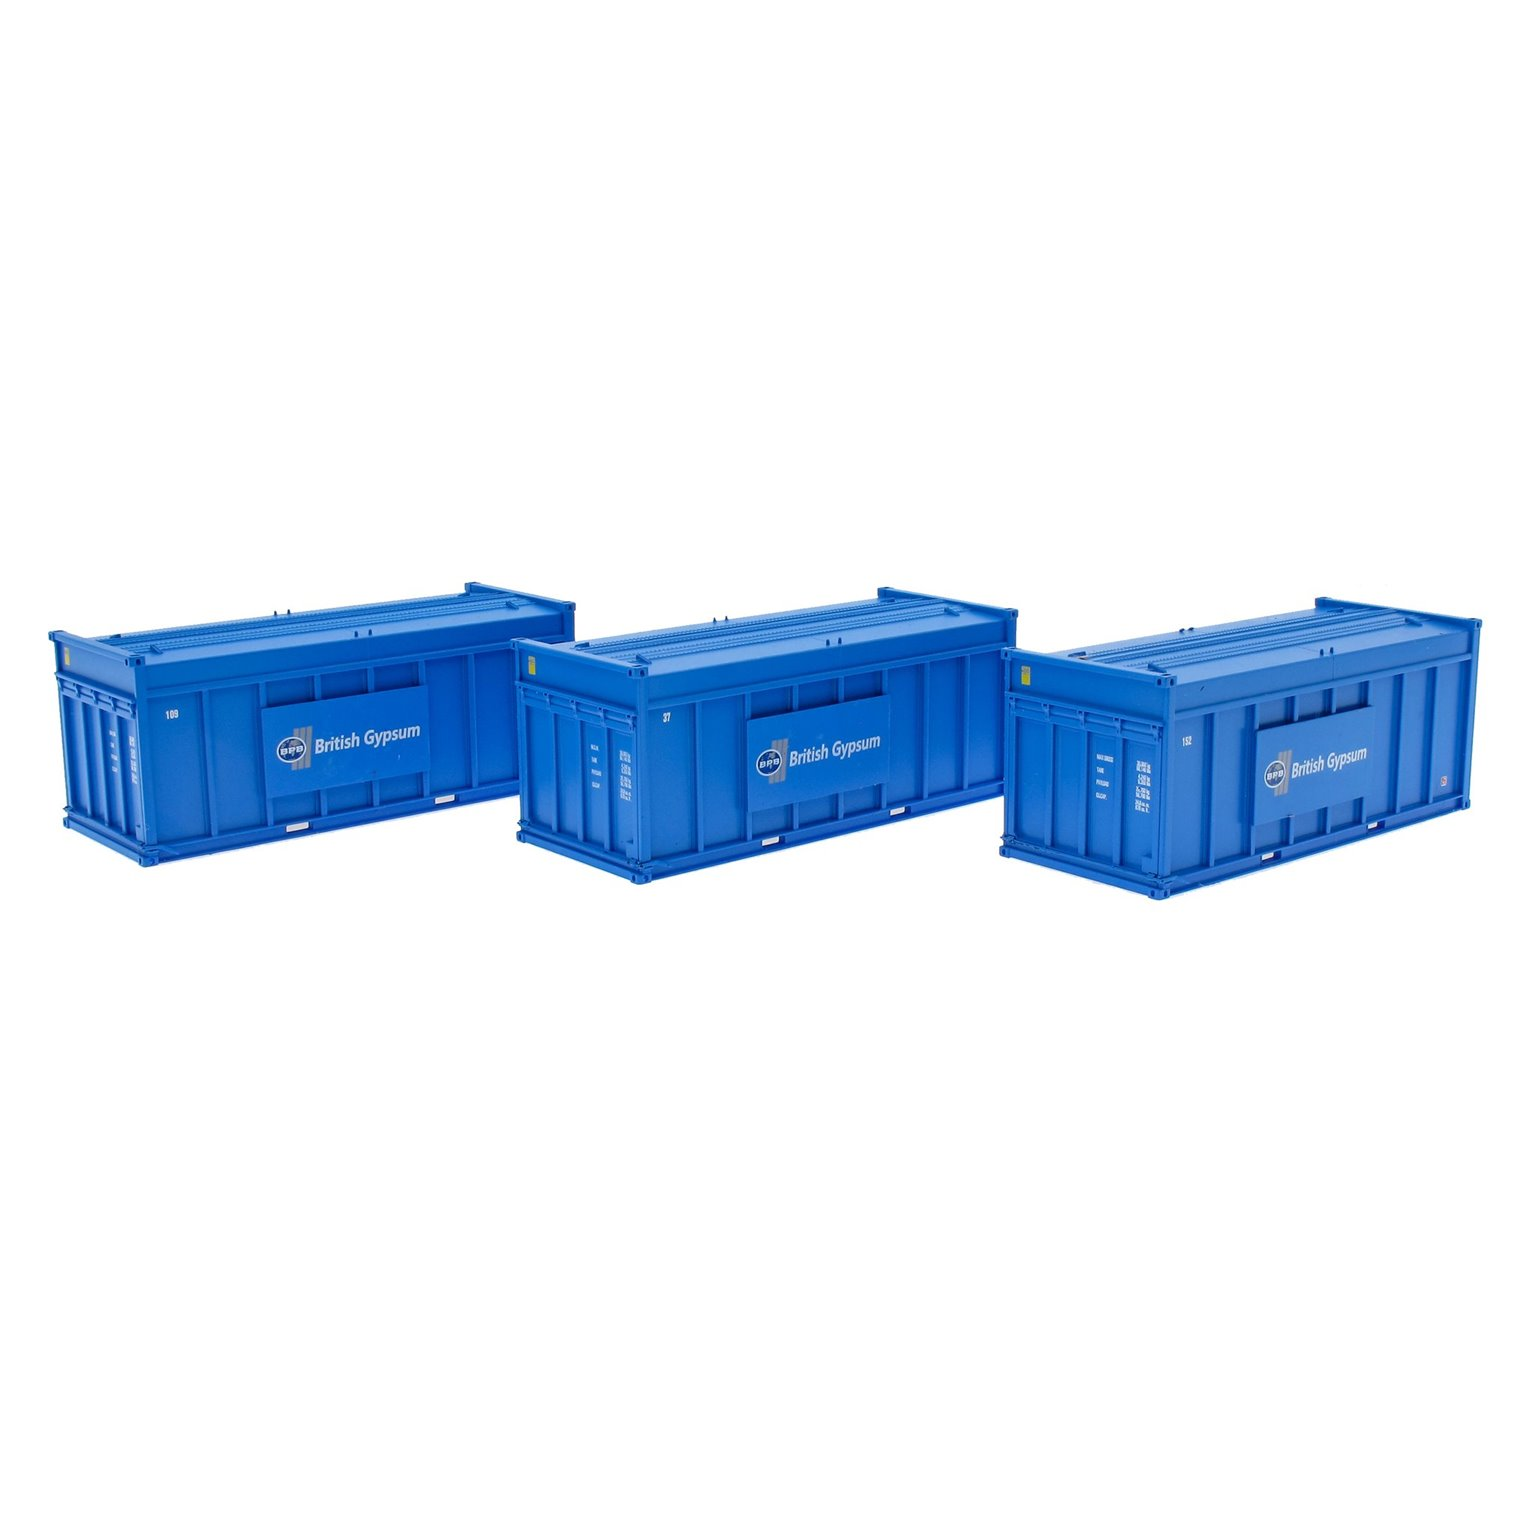 Pack of 3 Gypsum 20' Containers - Blue Containers